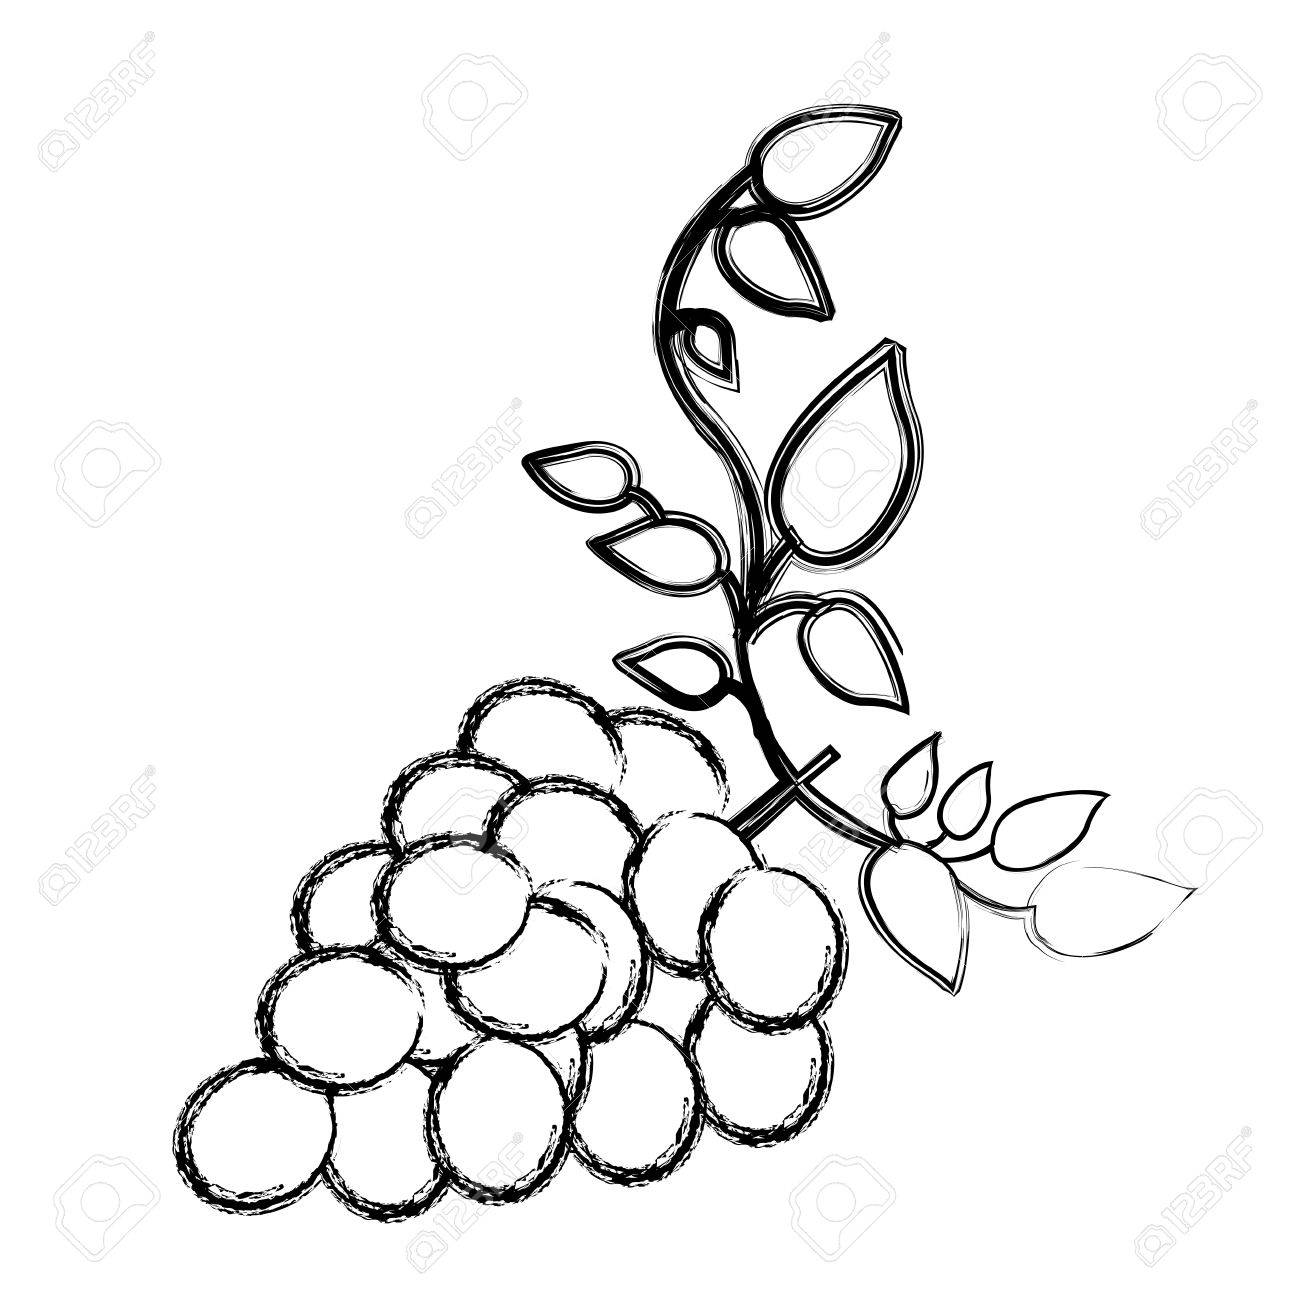 1300x1300 Monochrome Sketch Silhouette Of Bunch Of Grapes With Branch